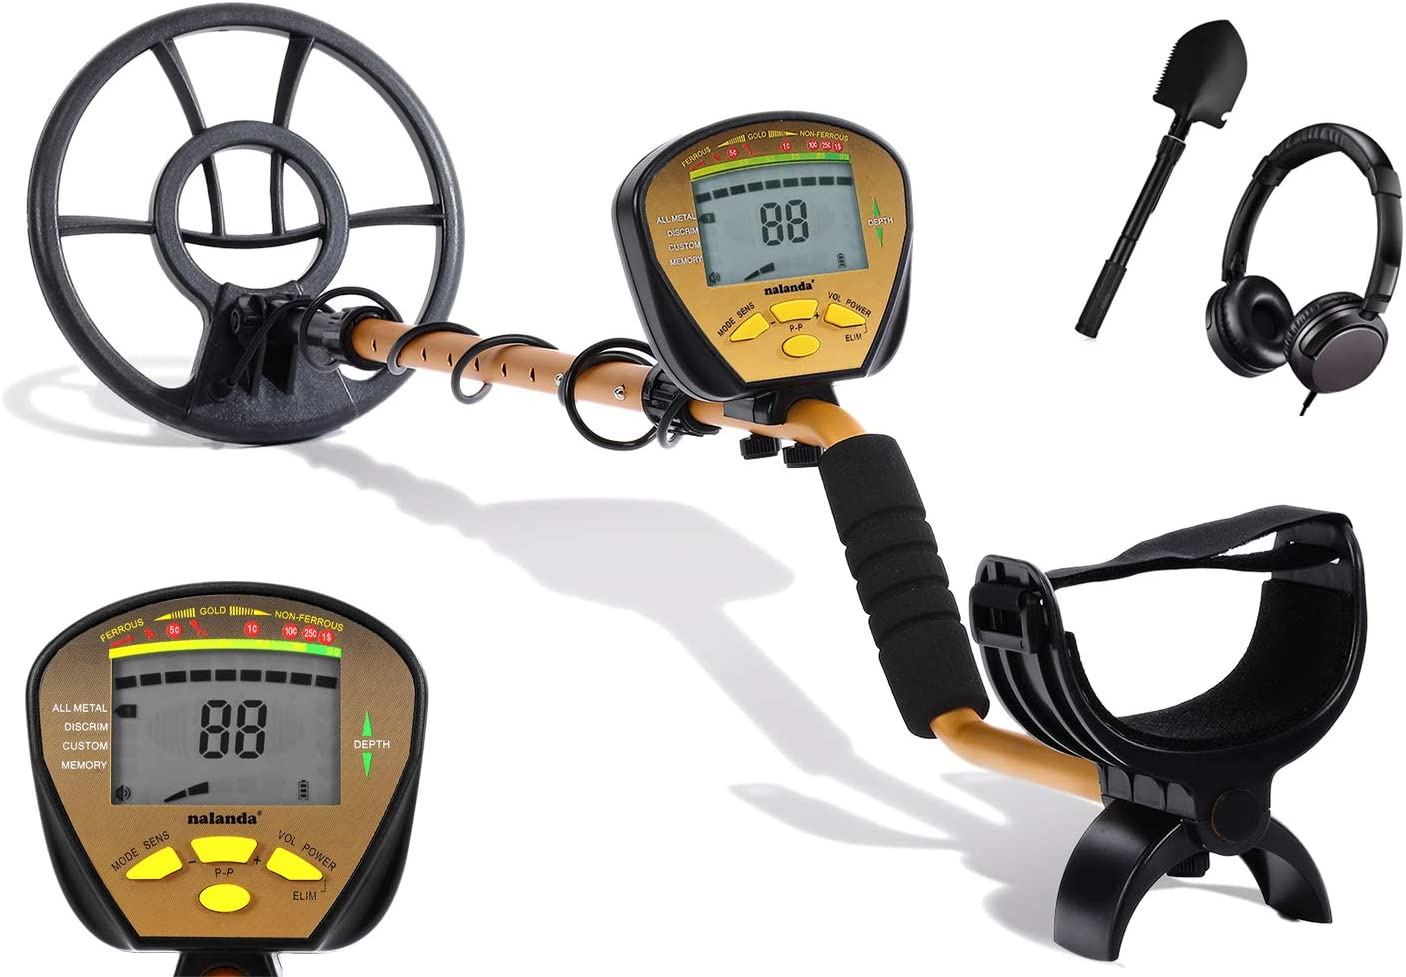 NALANDA 18 kHz Metal Detector with 5 Detection Modes, Outdoor Gold Digger Handheld Metal Finder with Adjustable Sensitivity Waterproof Search Coil LCD Display (Included Foldable Shovel and Headphone)